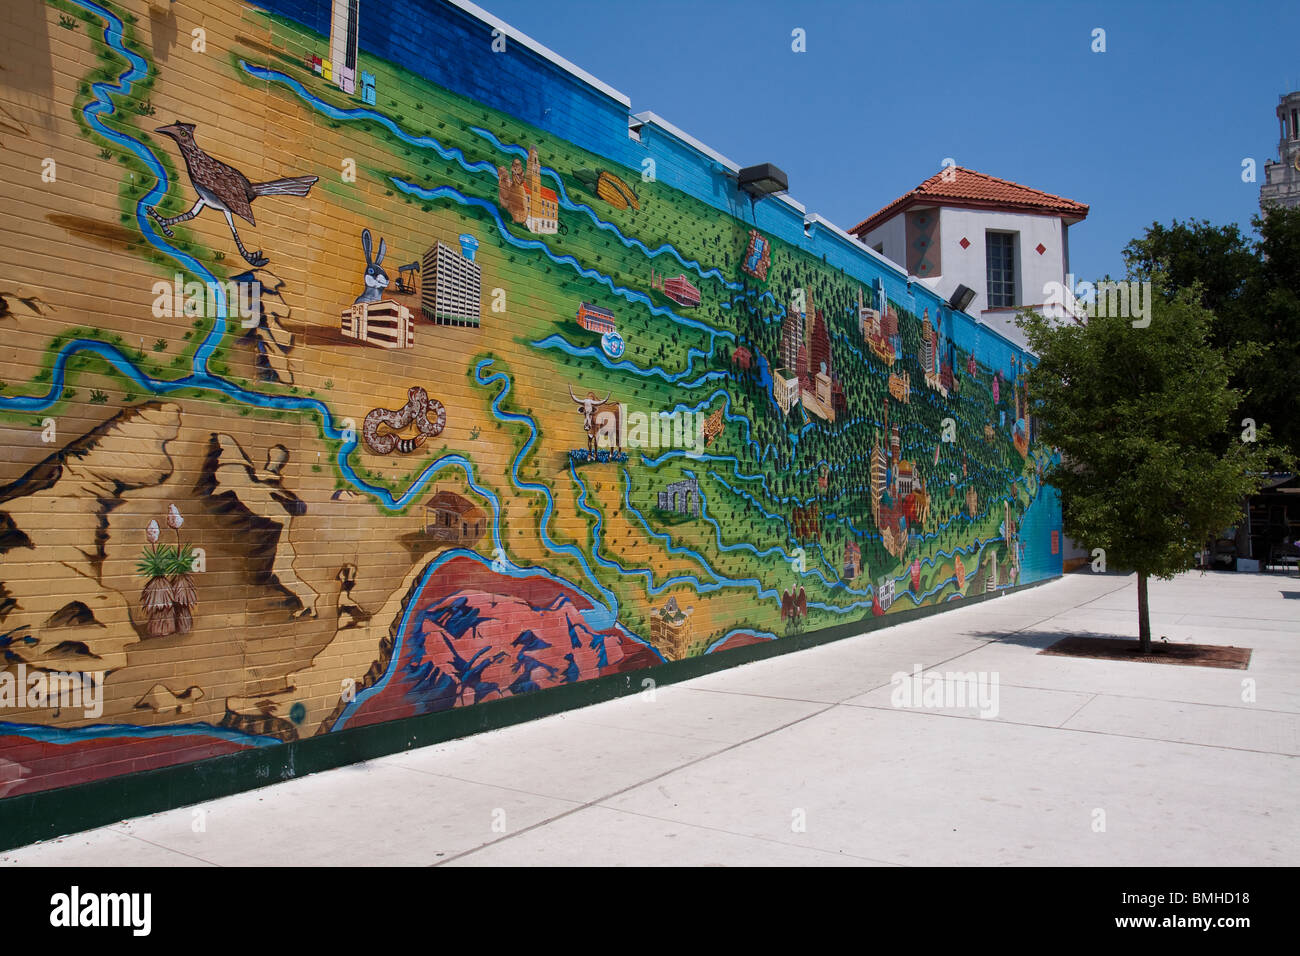 Colorful mural in Renaissance Market plaza along the drag at the University of Texas at Austin - Stock Image